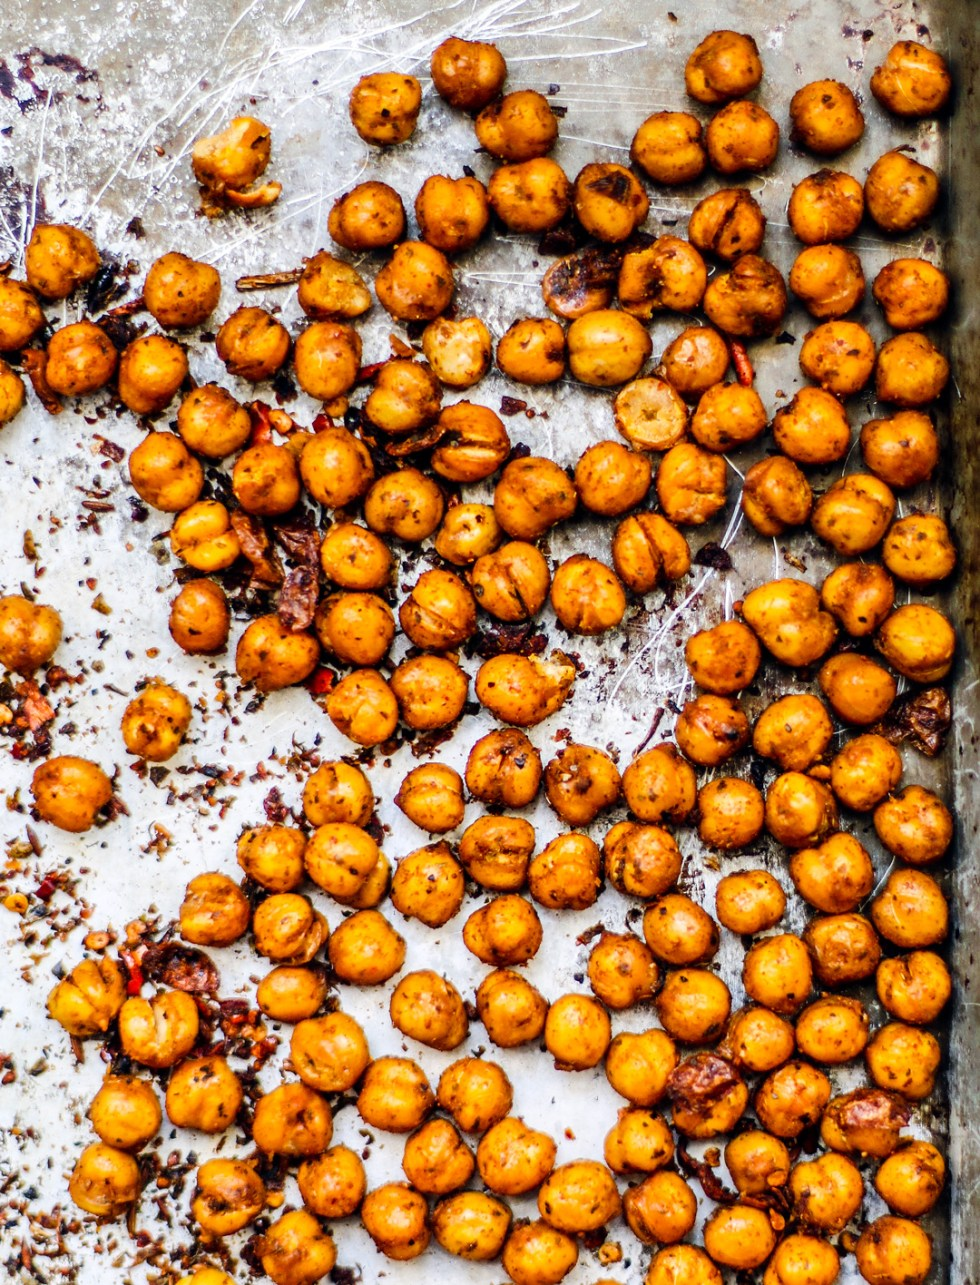 Baking tray full of crispy chipotle chickpeas.